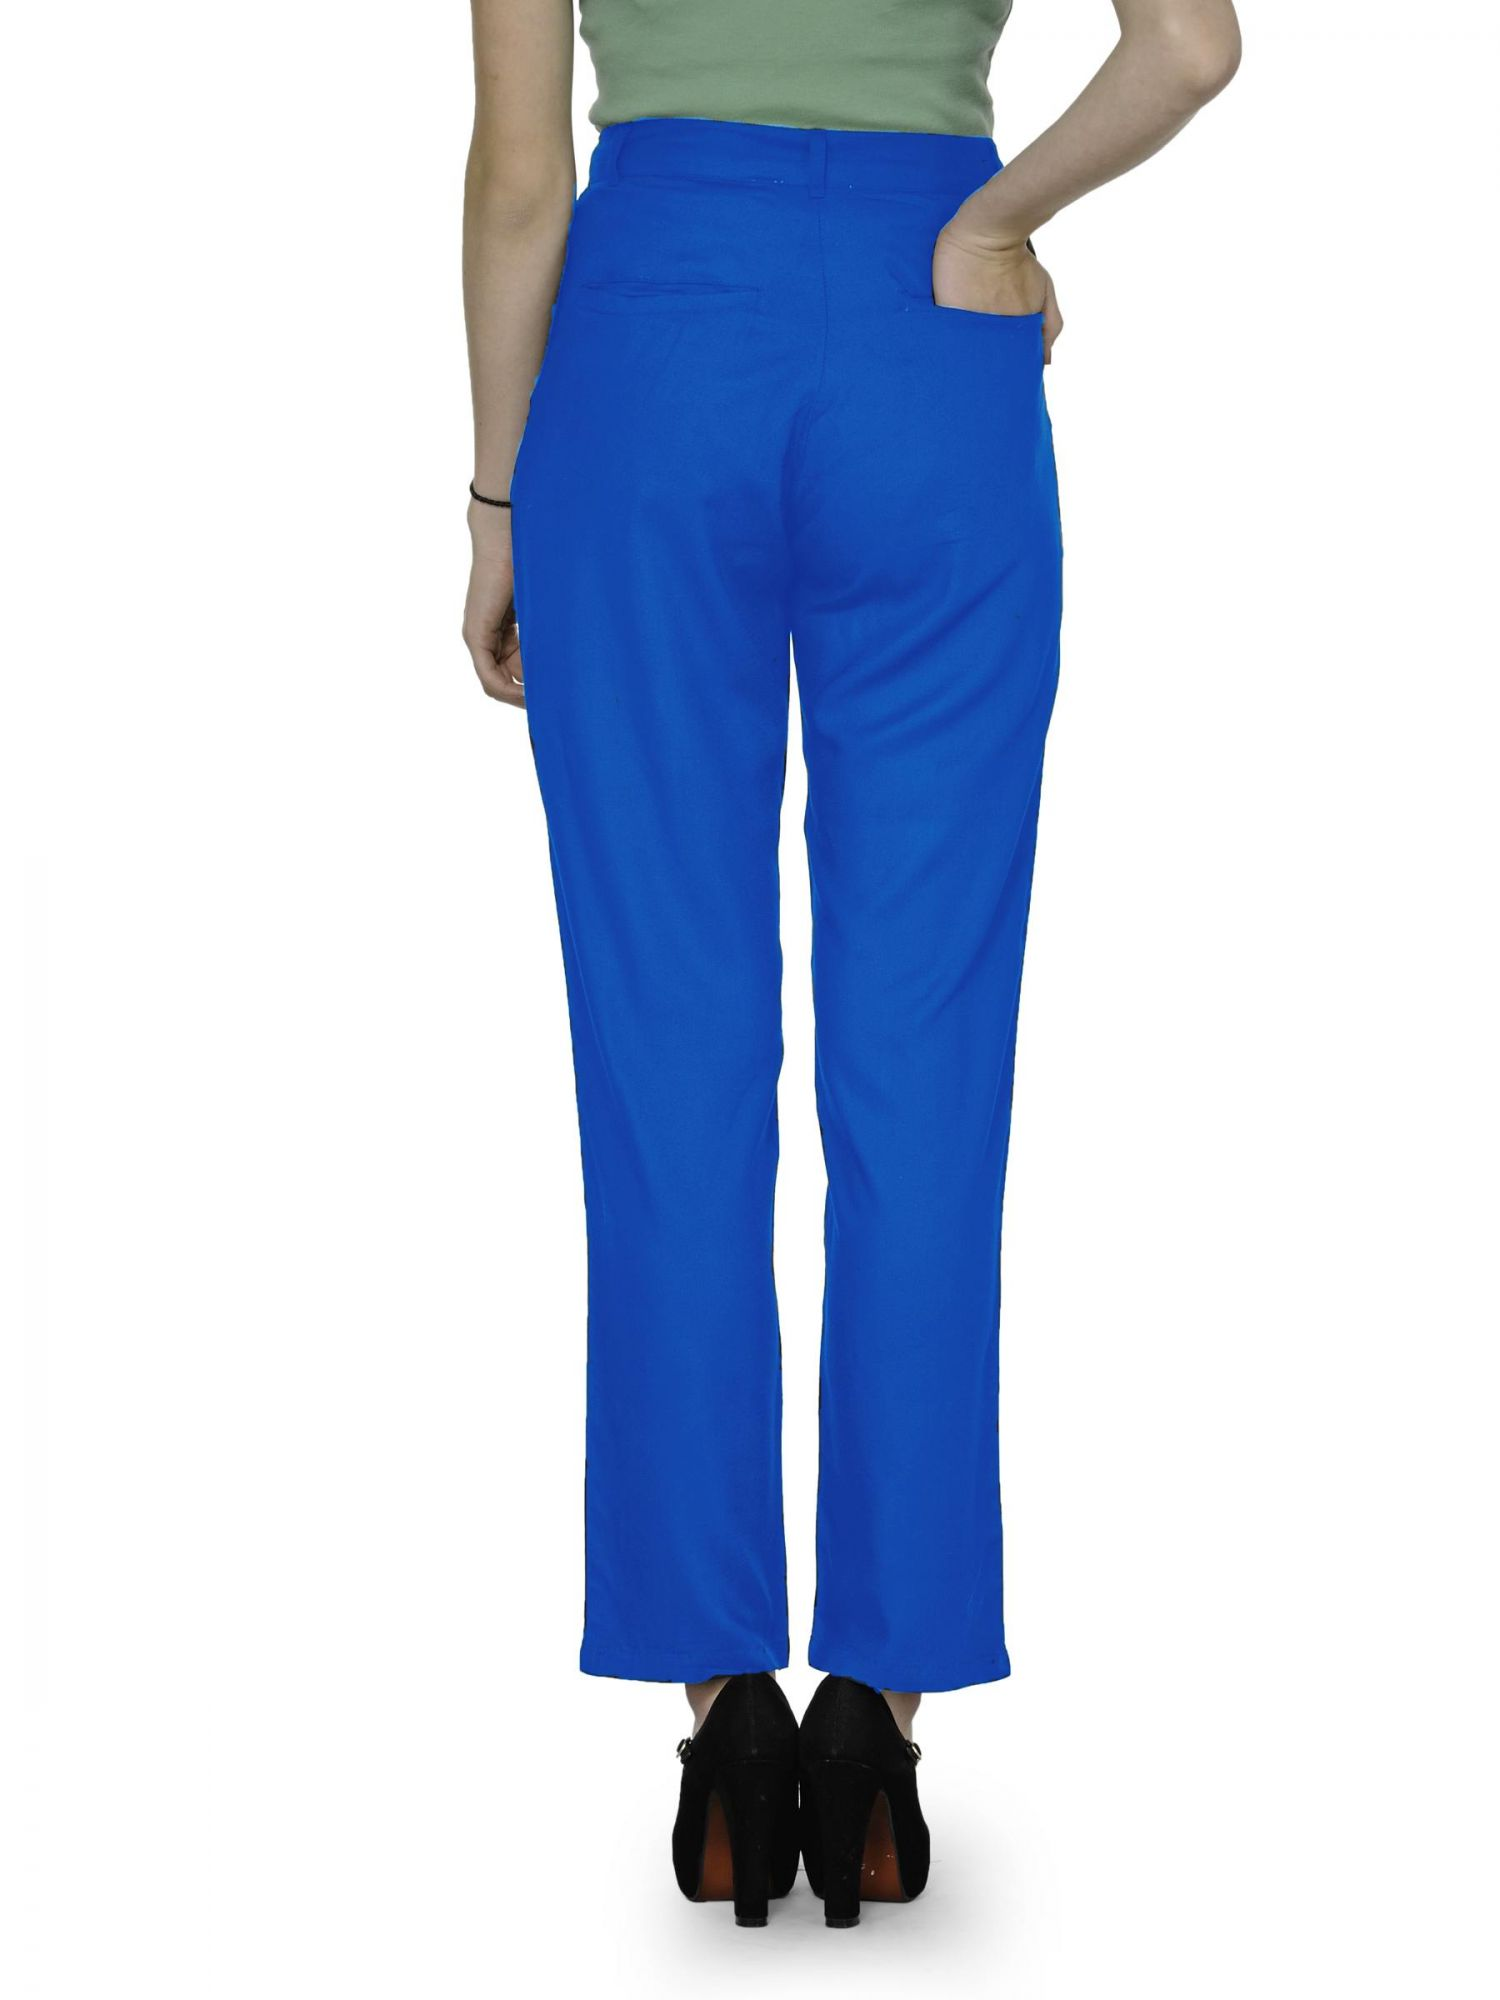 Straight Fit Formal Trousers in Turquoise Blue